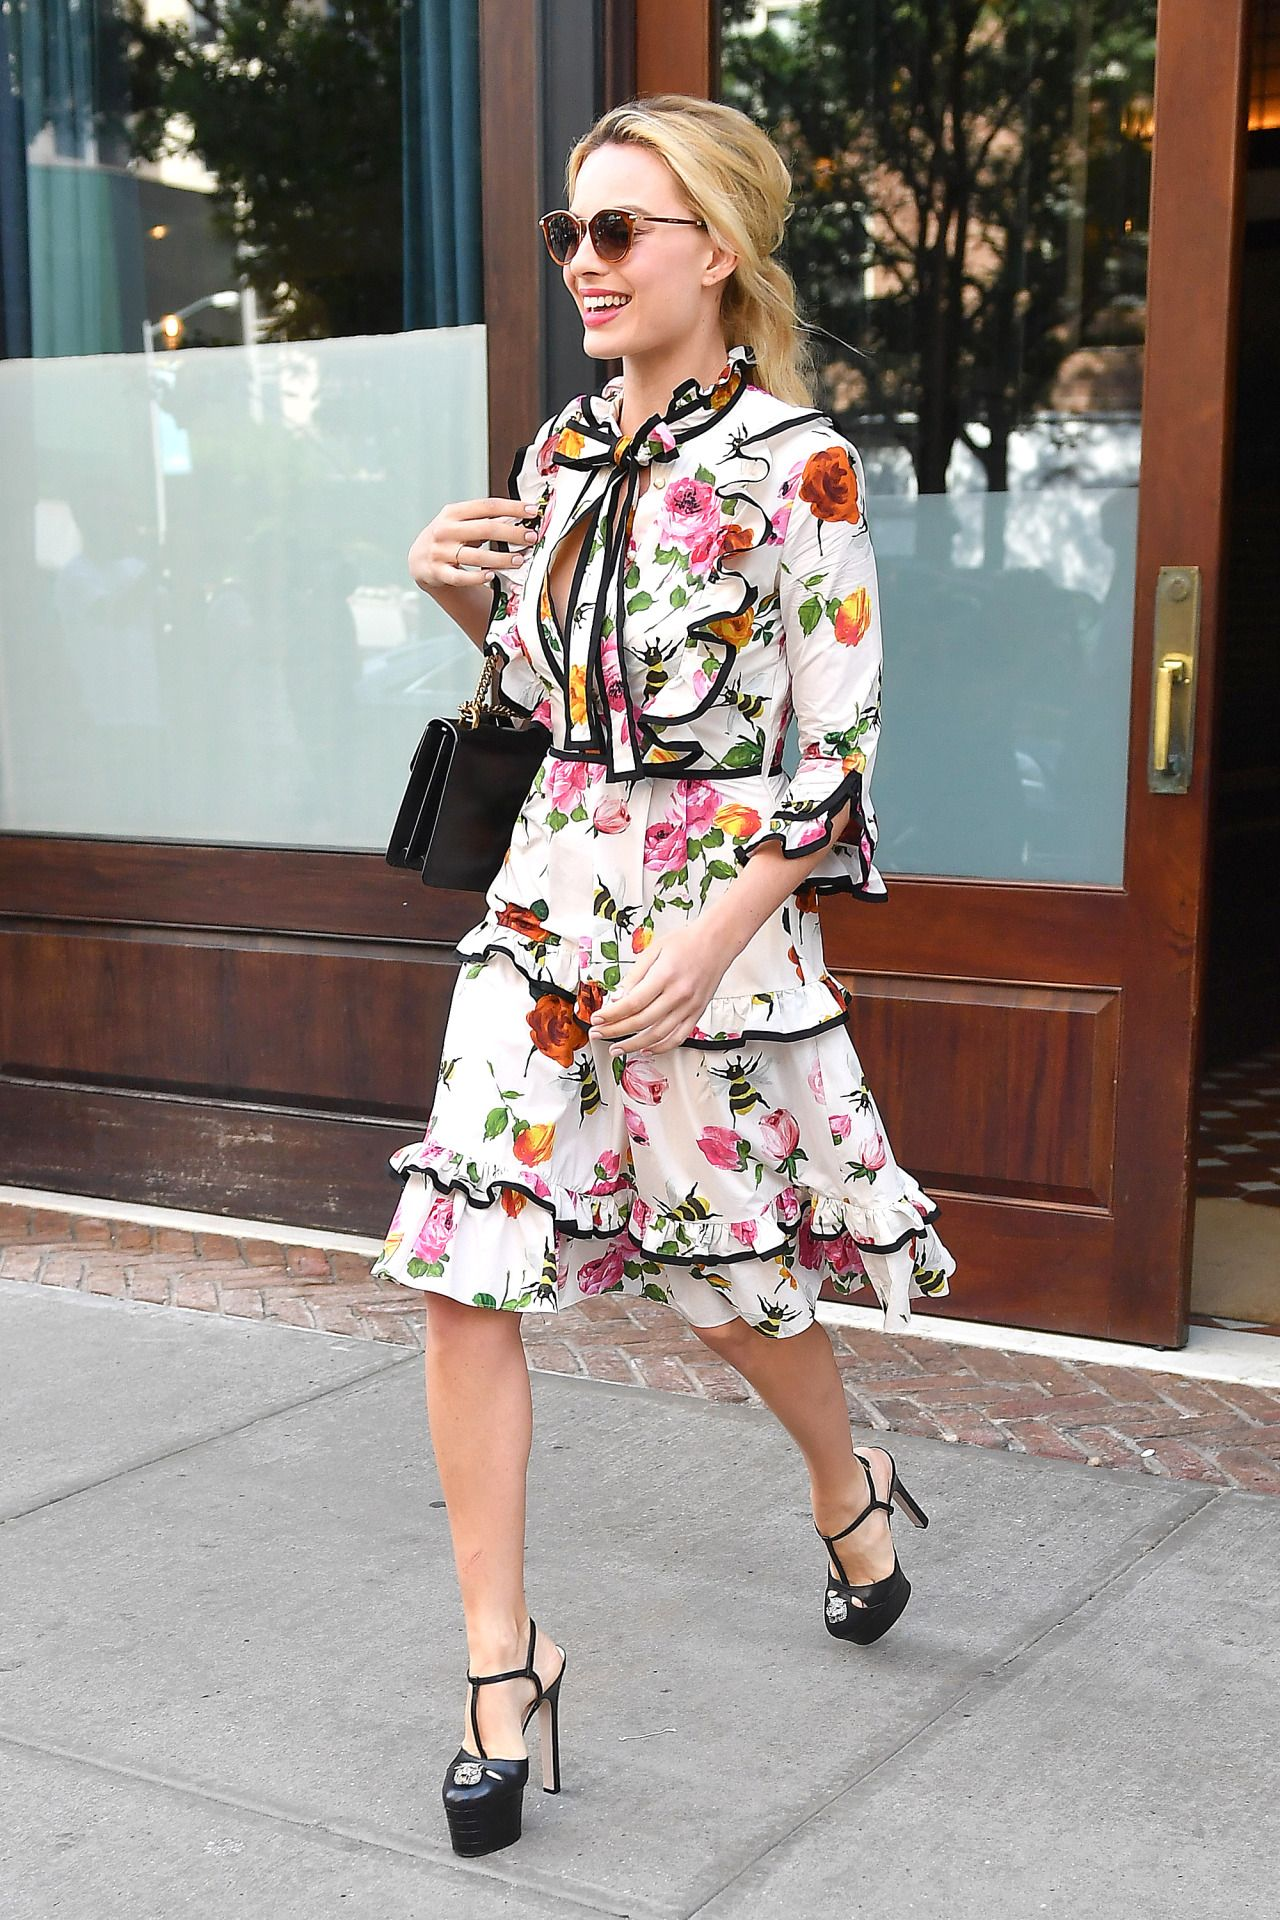 cc6dbeb8be137a The Best Celebrity Style Secrets. Margot Robbie's flirty Gucci dress acts  as the perfect summer staple.